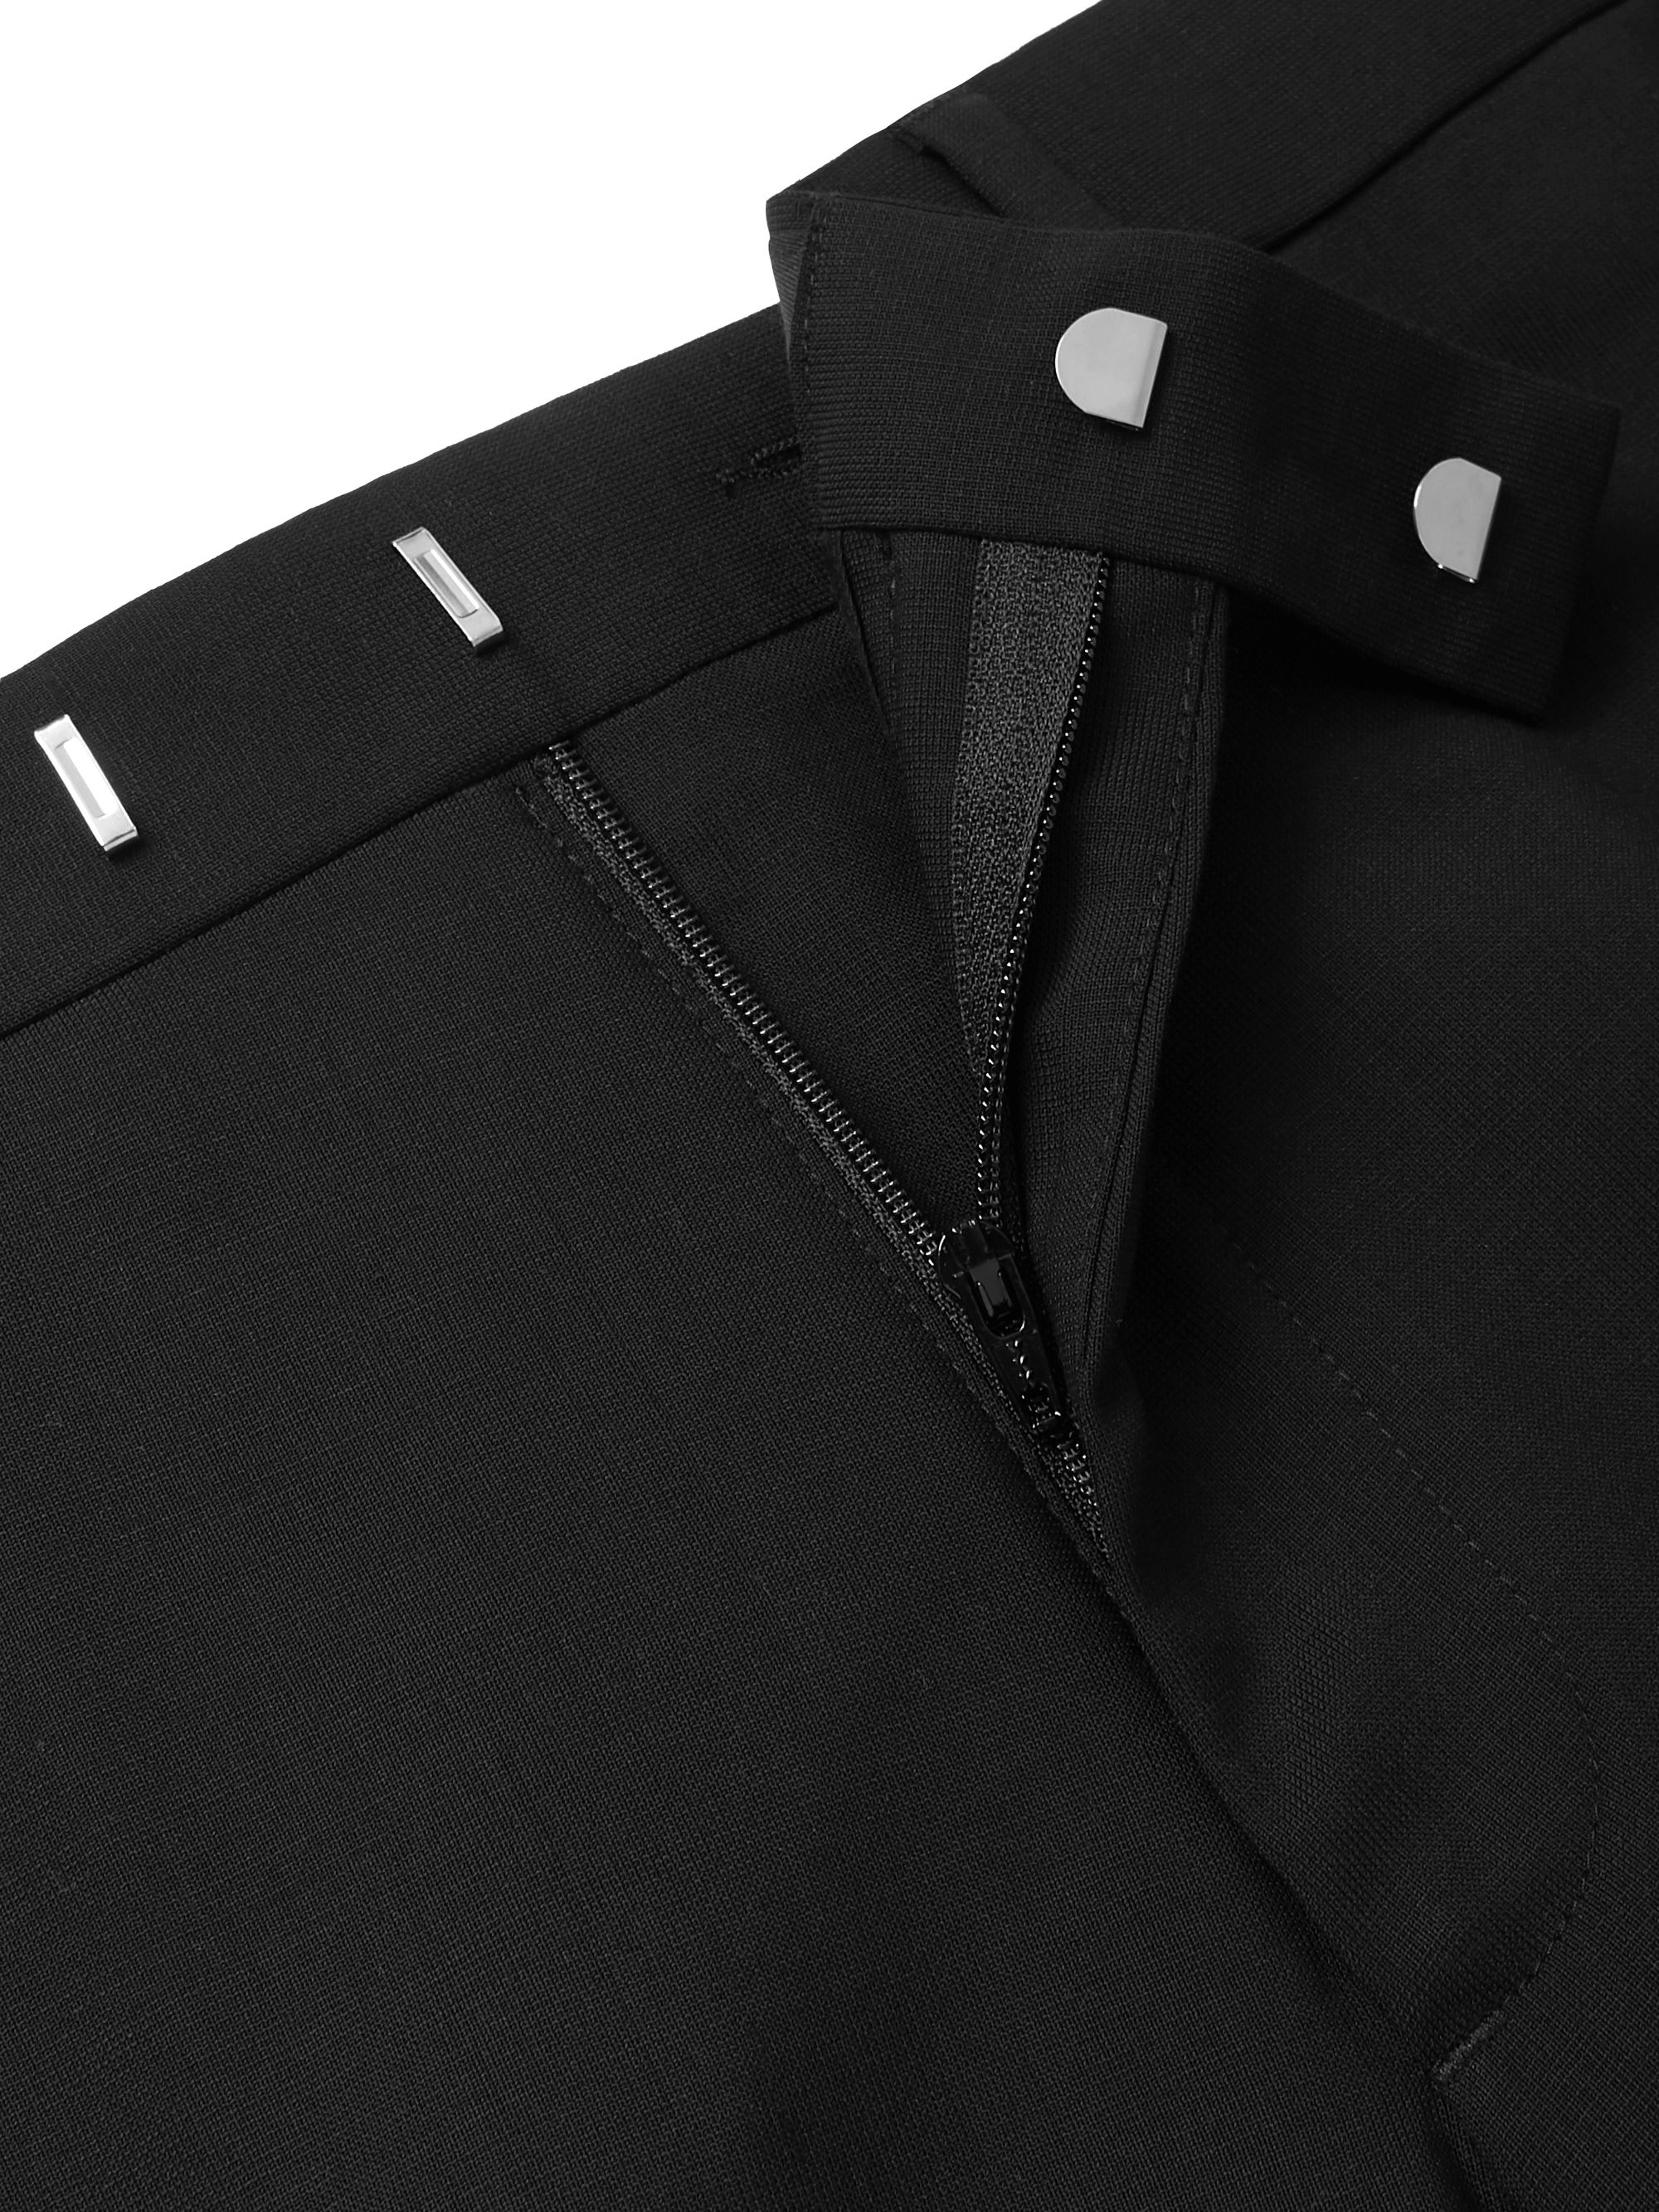 Sandro Black Wool-Blend Suit Trousers